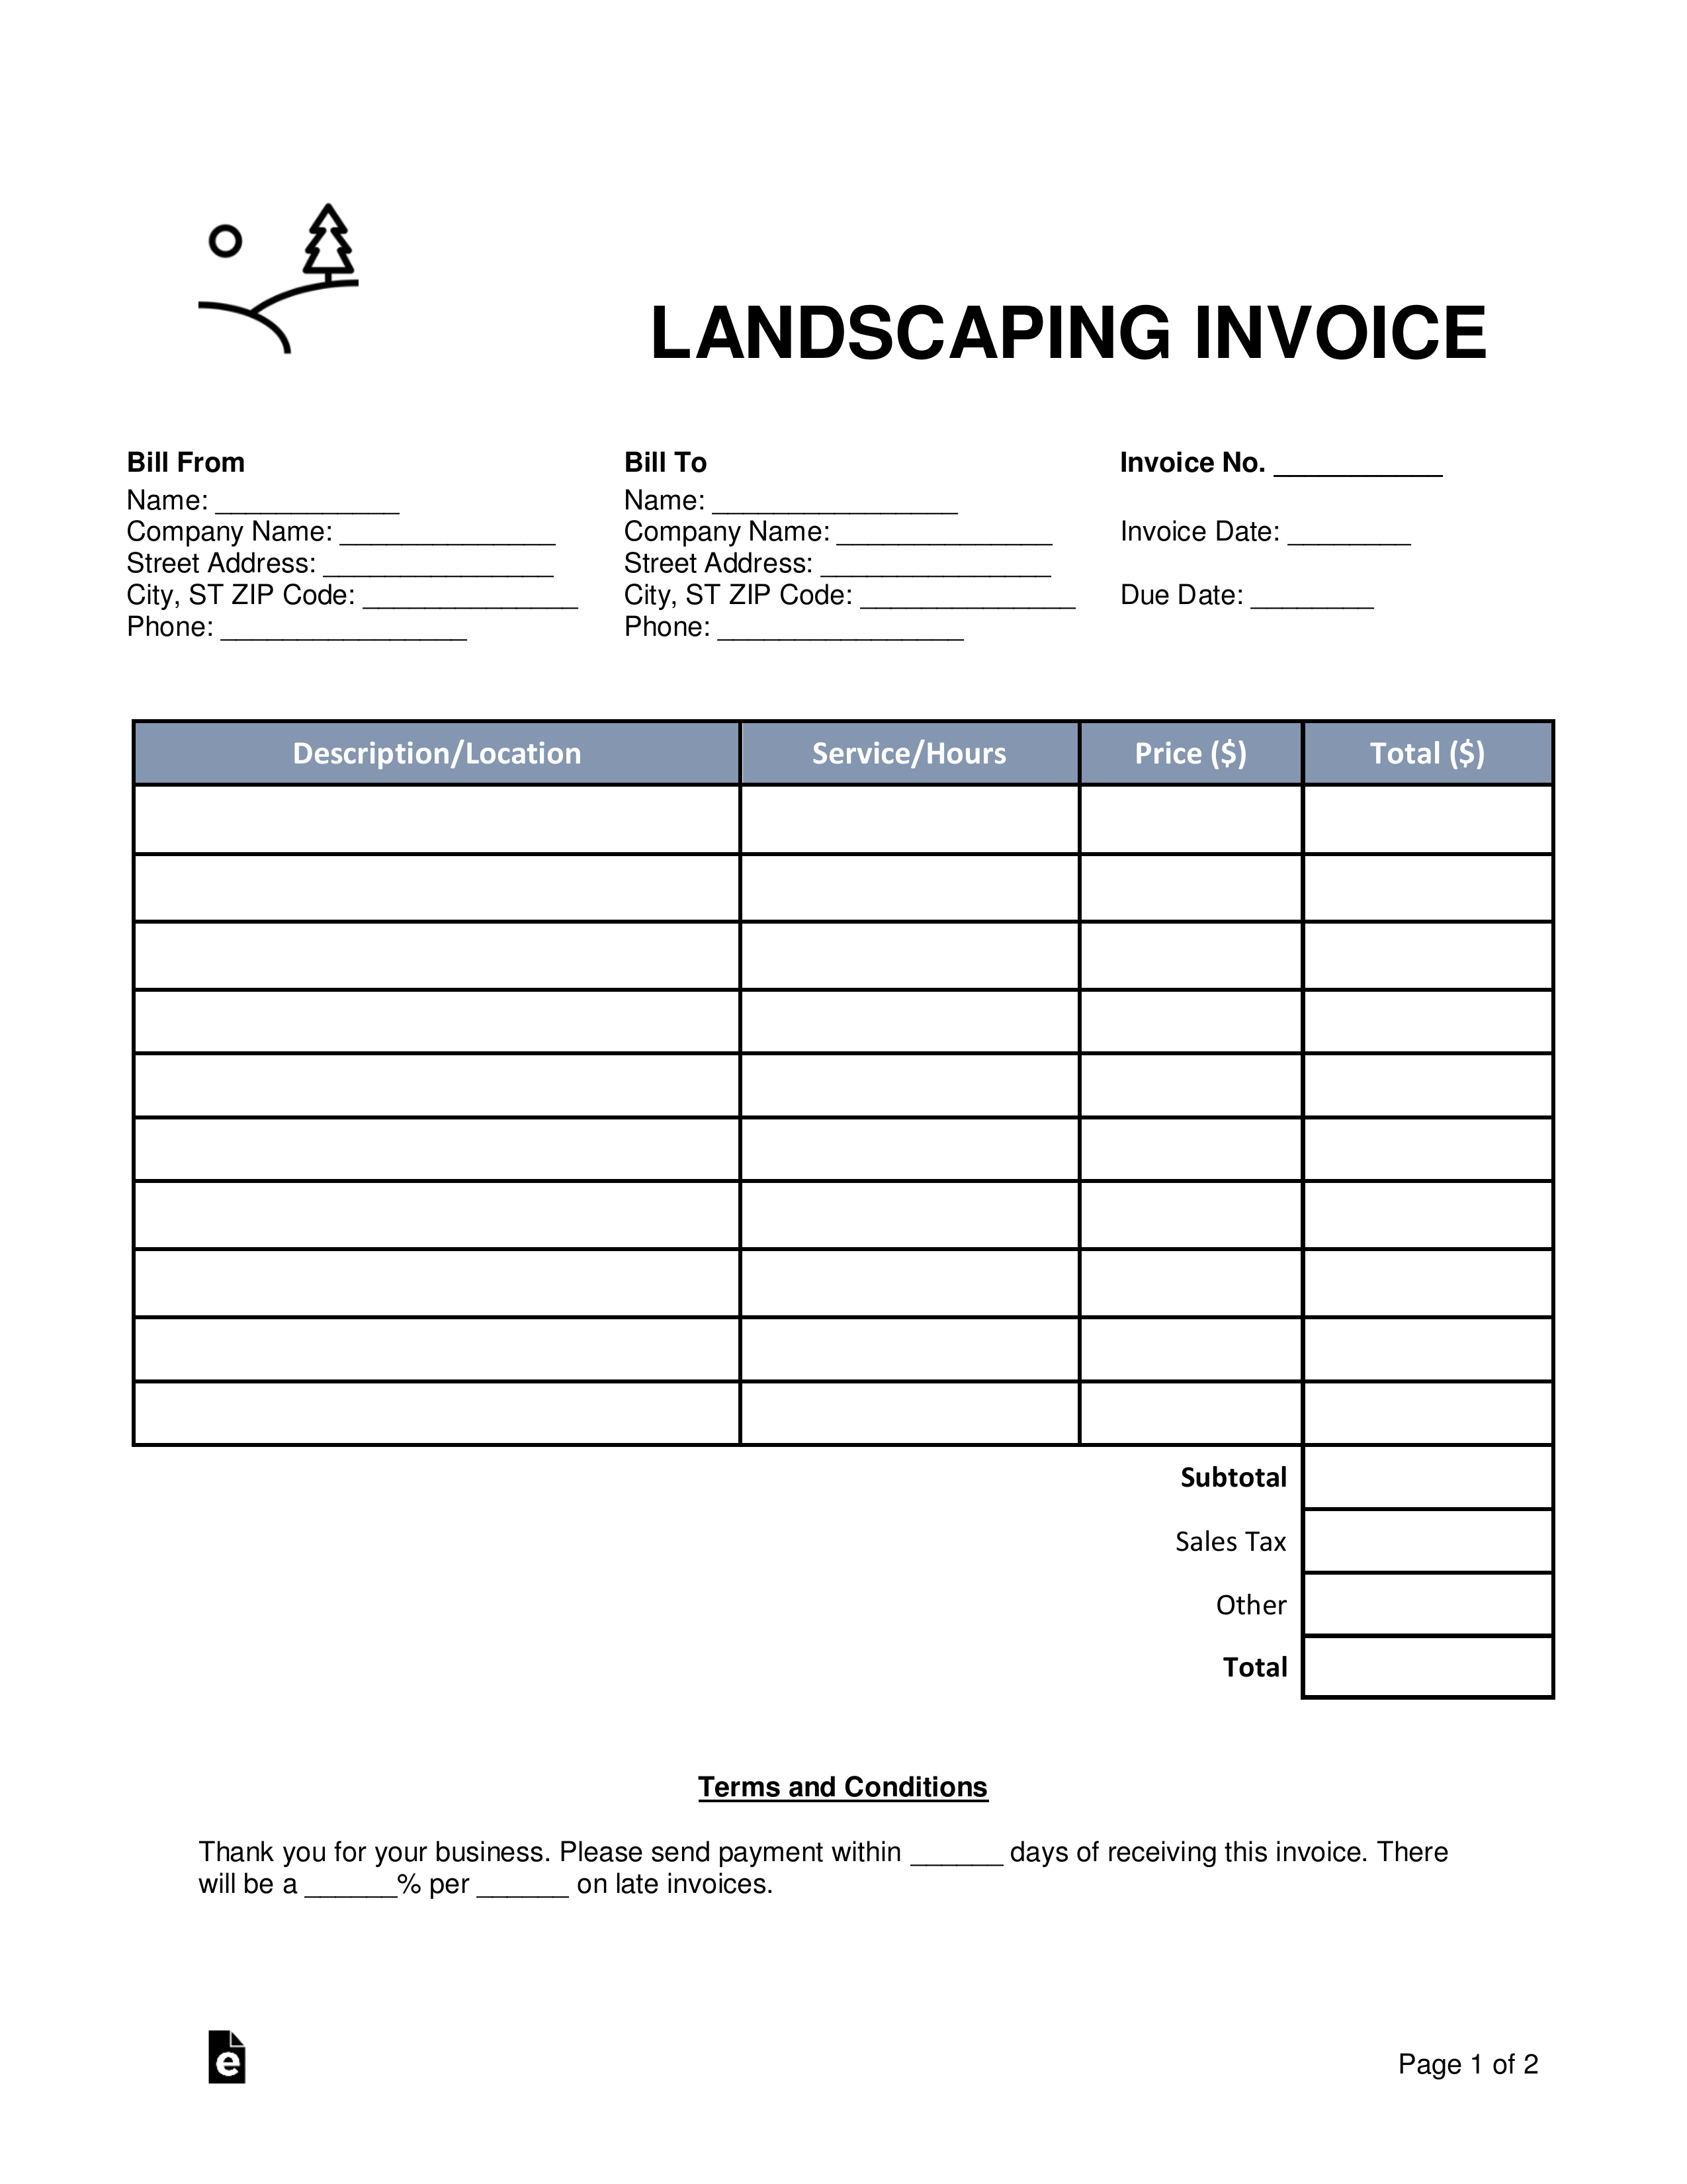 Landscaping Invoice Template Free